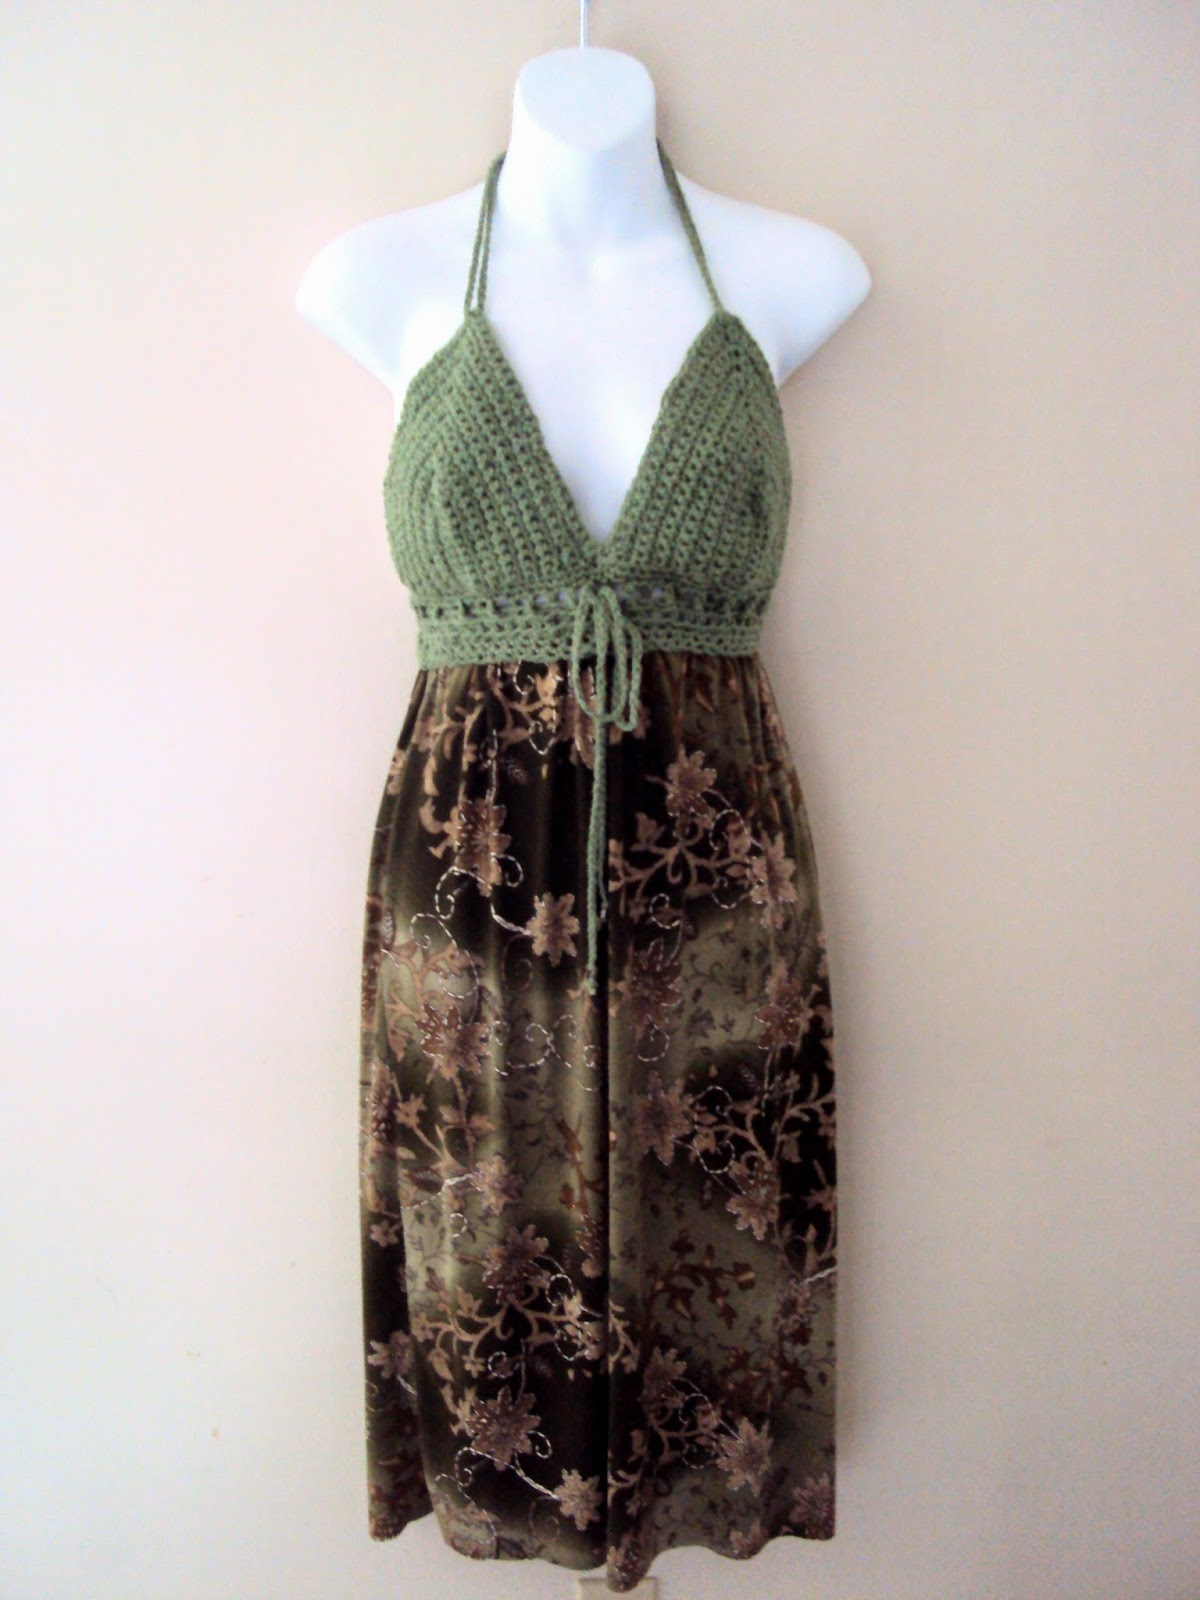 https://www.etsy.com/listing/225706581/crochet-top-dress-womens-green-cotton?ref=listing-shop-header-1